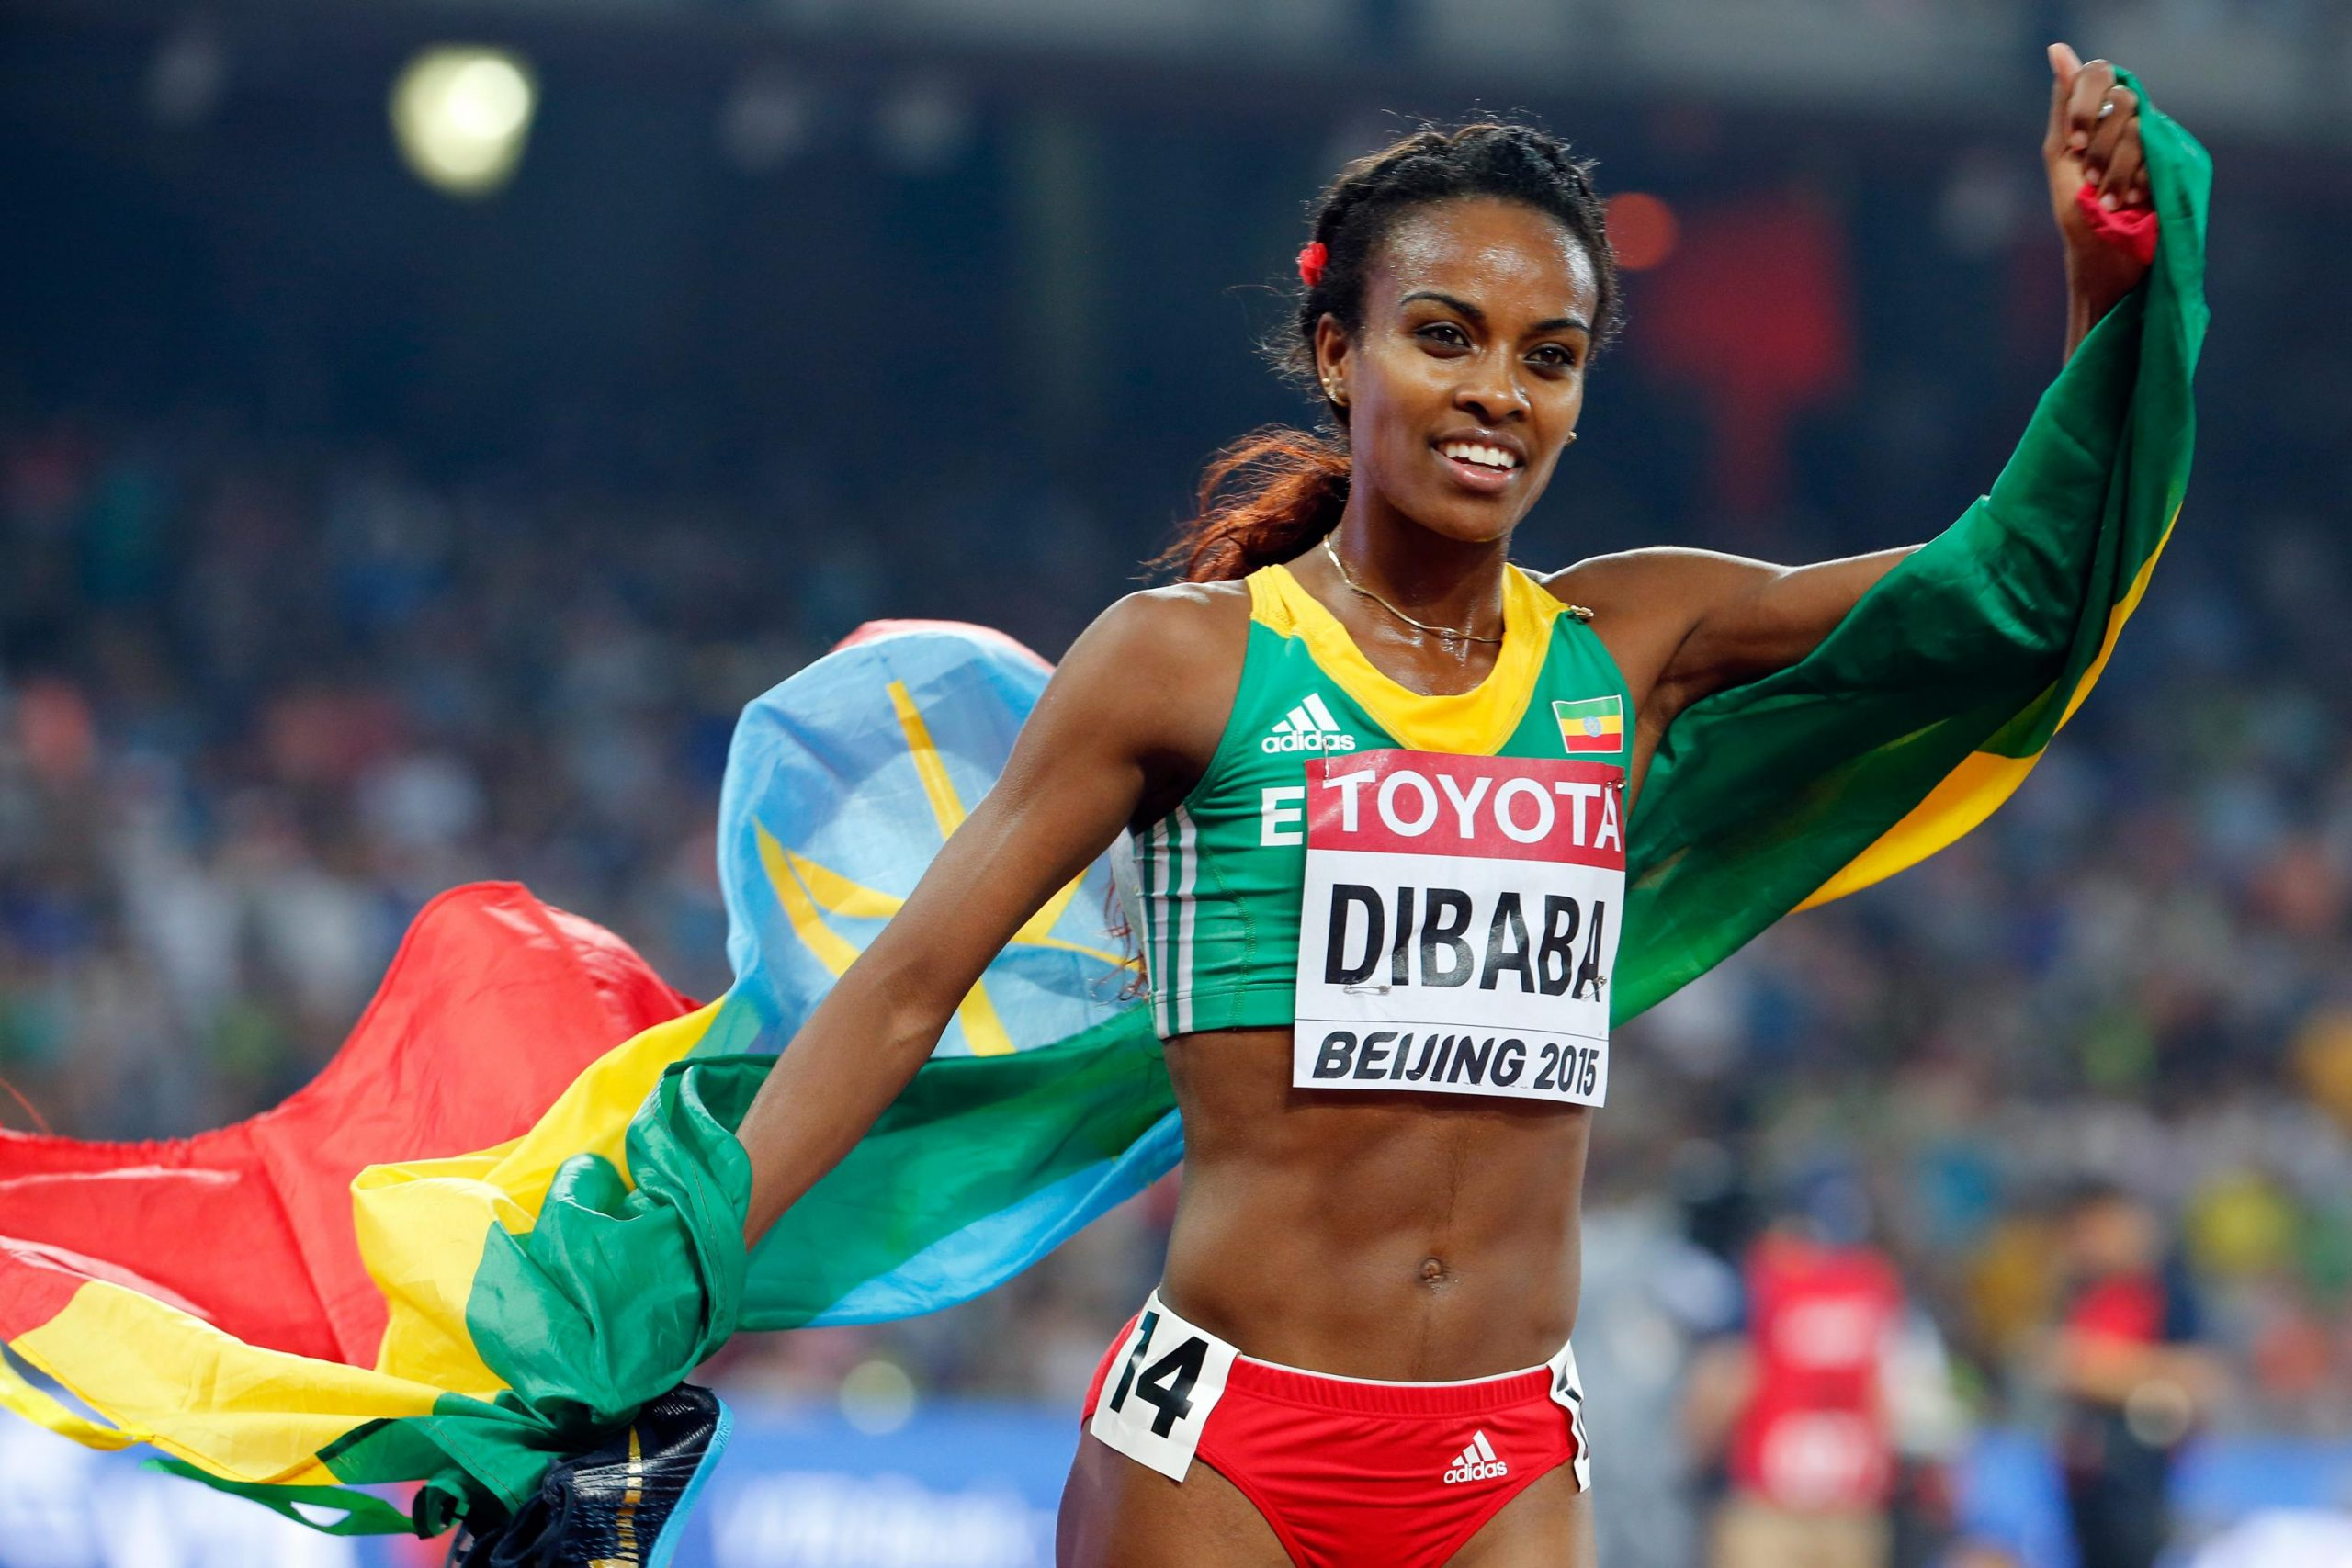 Ethiopian Dibaba signs up for high profile Ostrava athletics meeting - Sports Leo